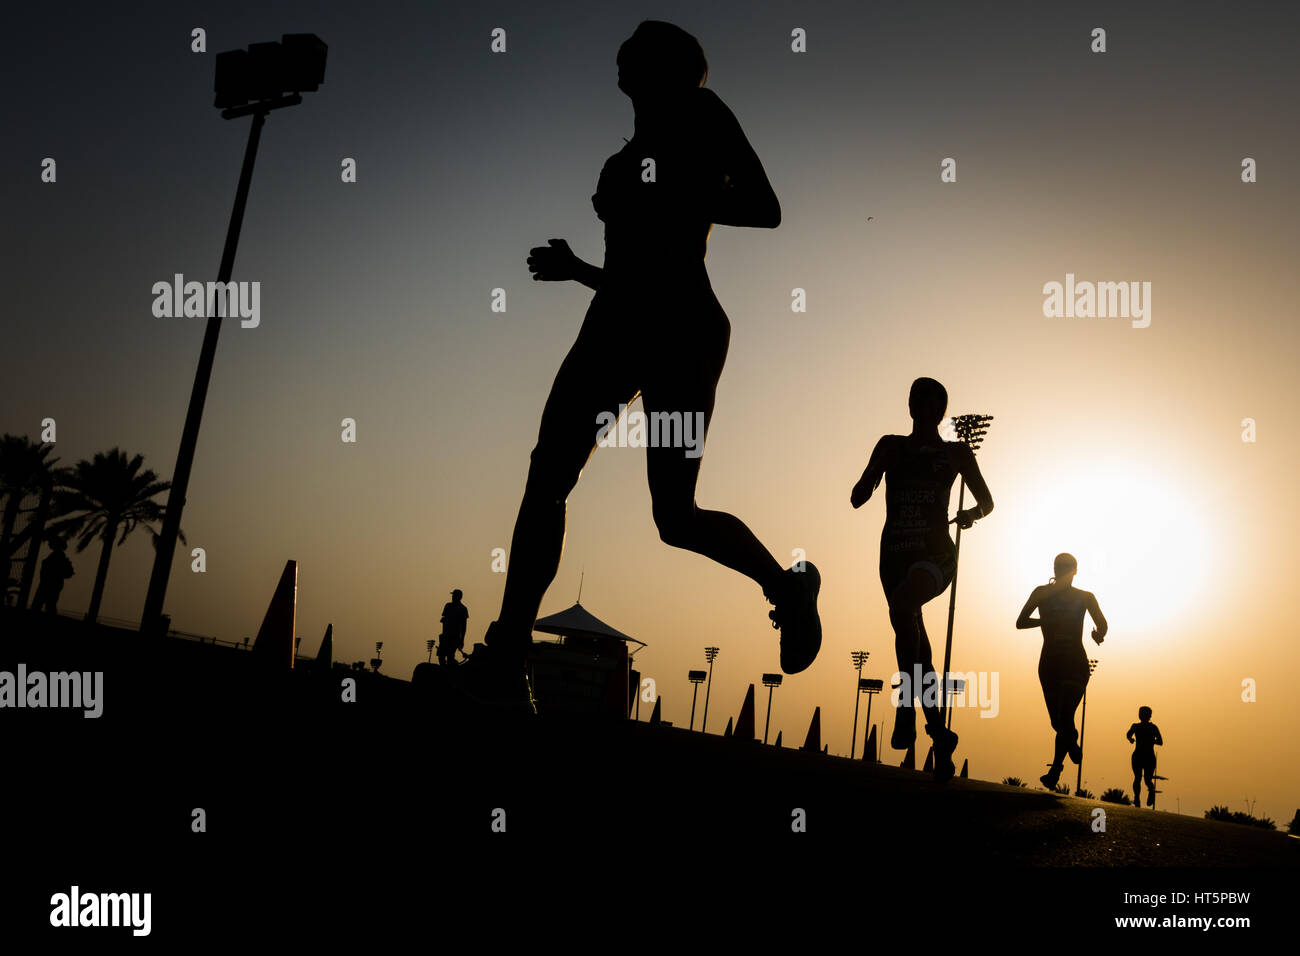 Triathlon Photo Stock